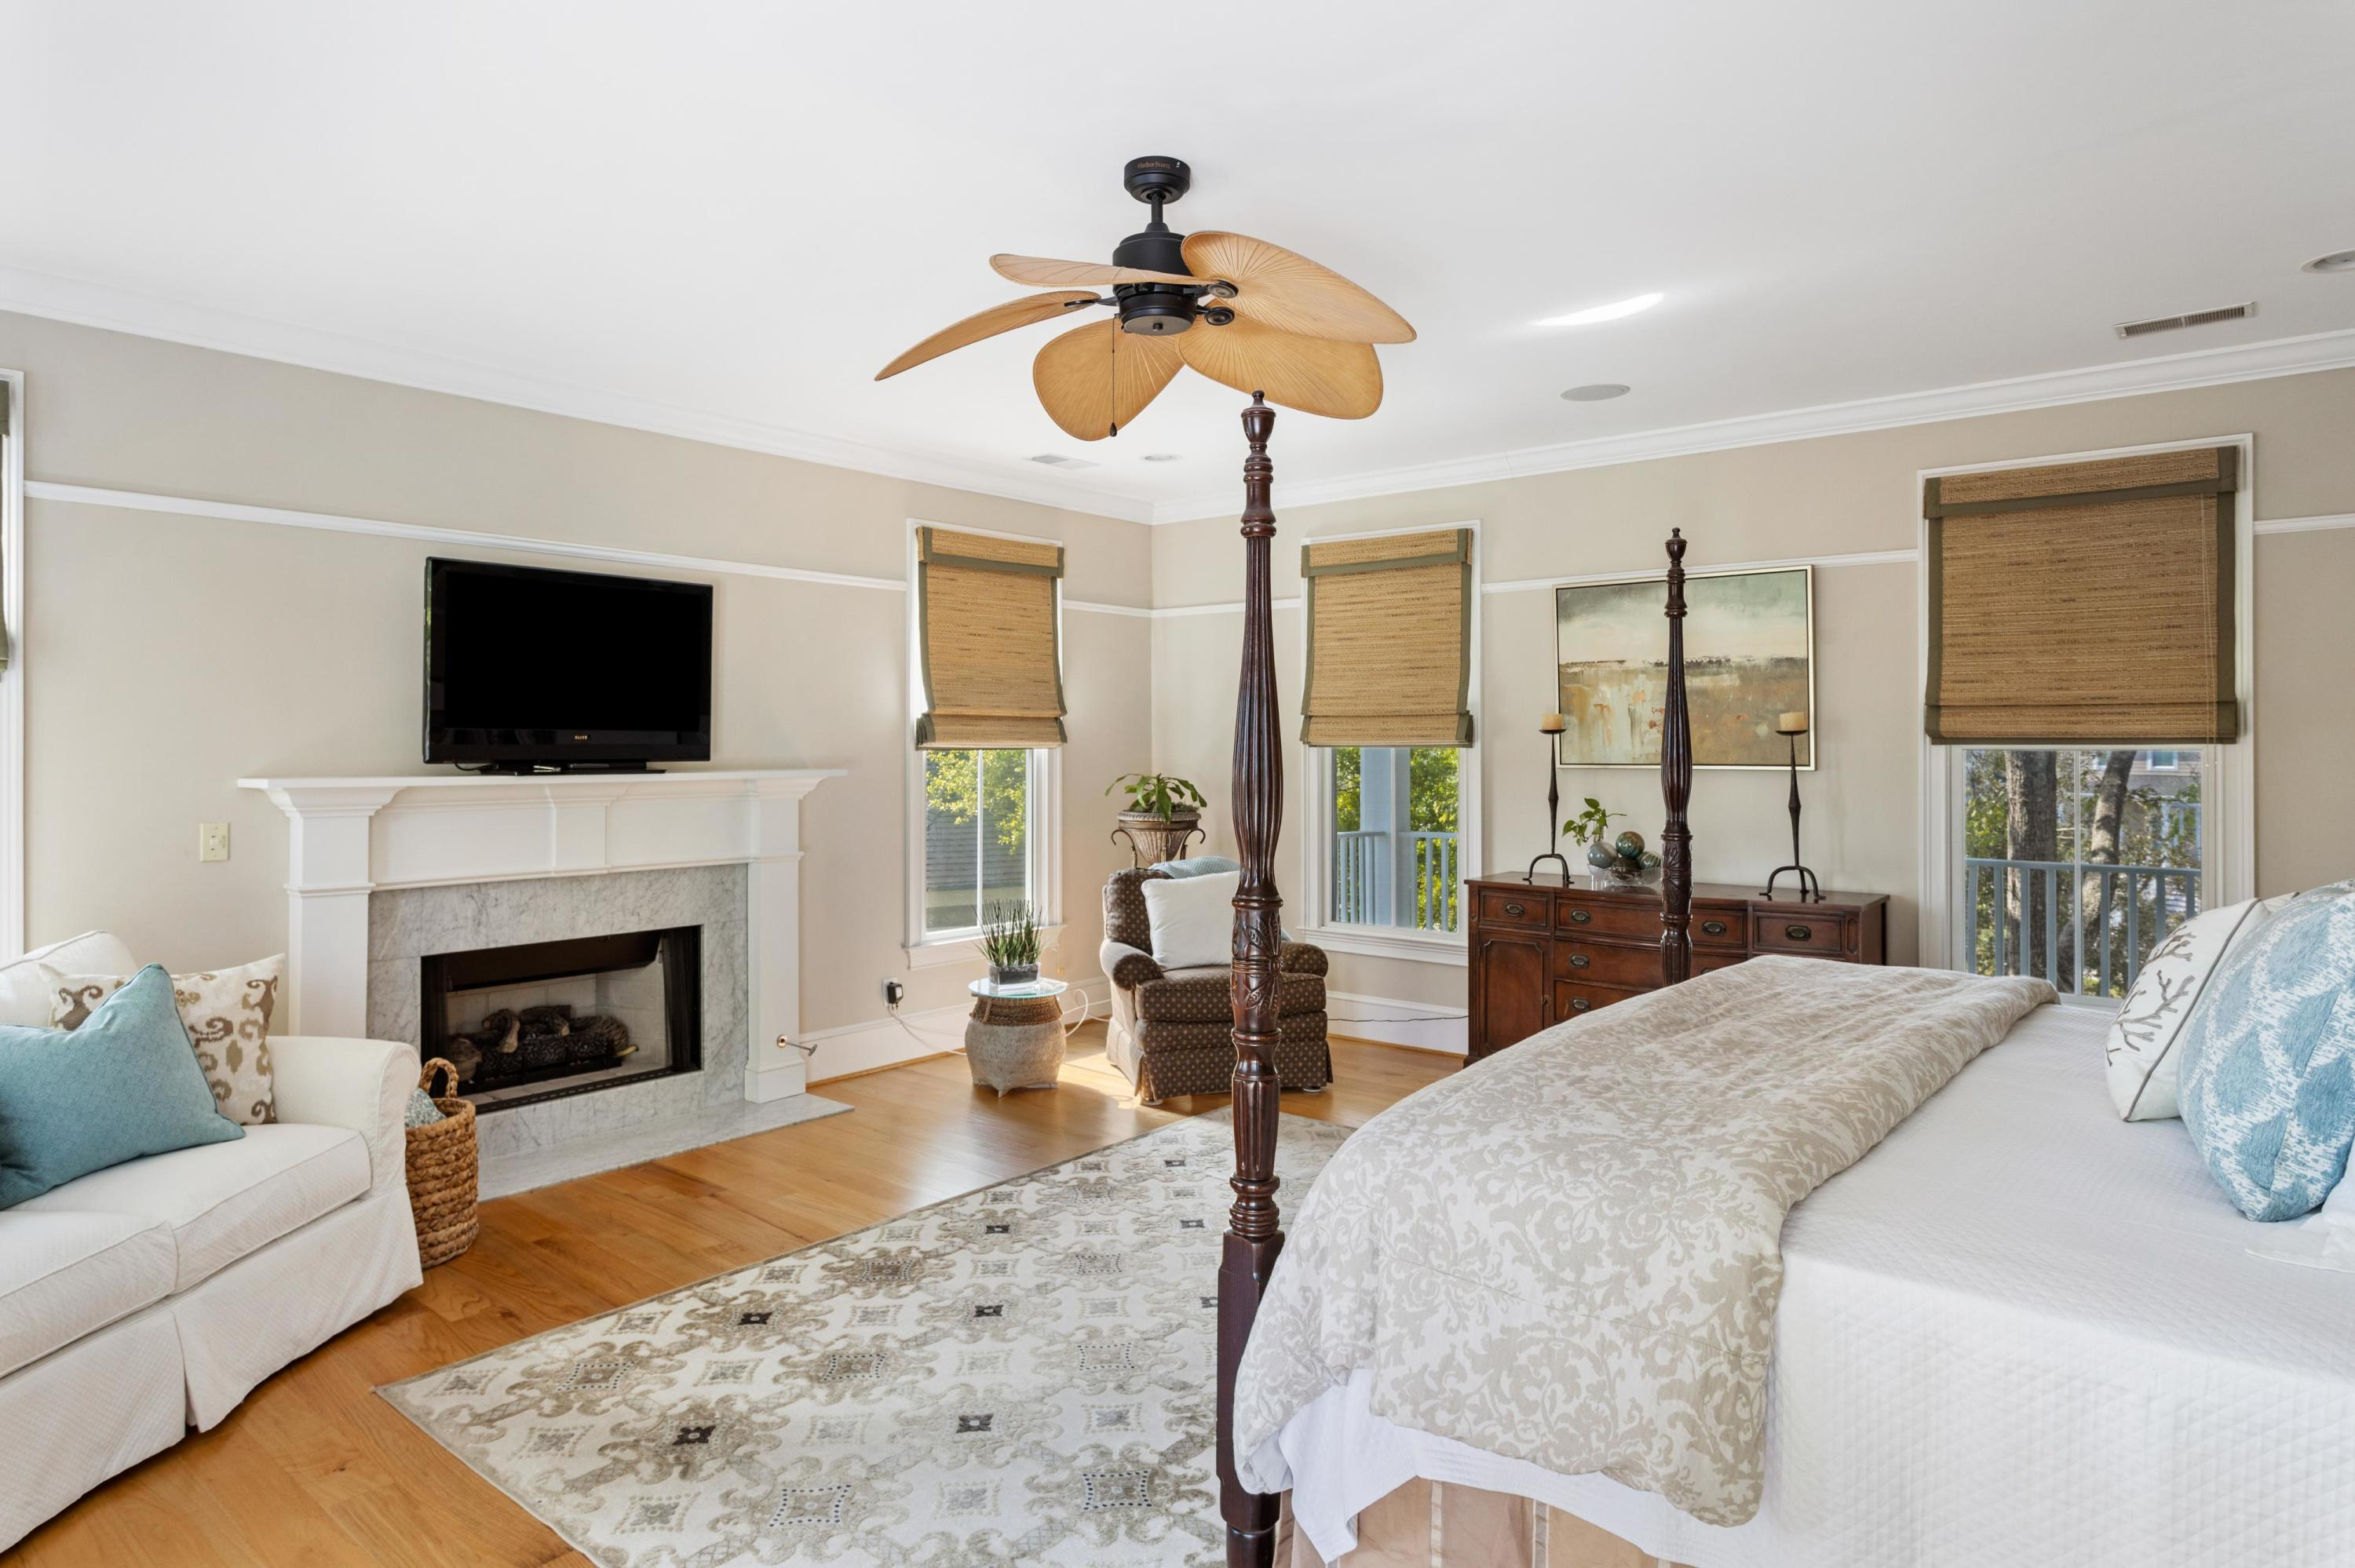 Rivertowne Country Club Homes For Sale - 1629 Rivertowne Country Club, Mount Pleasant, SC - 28